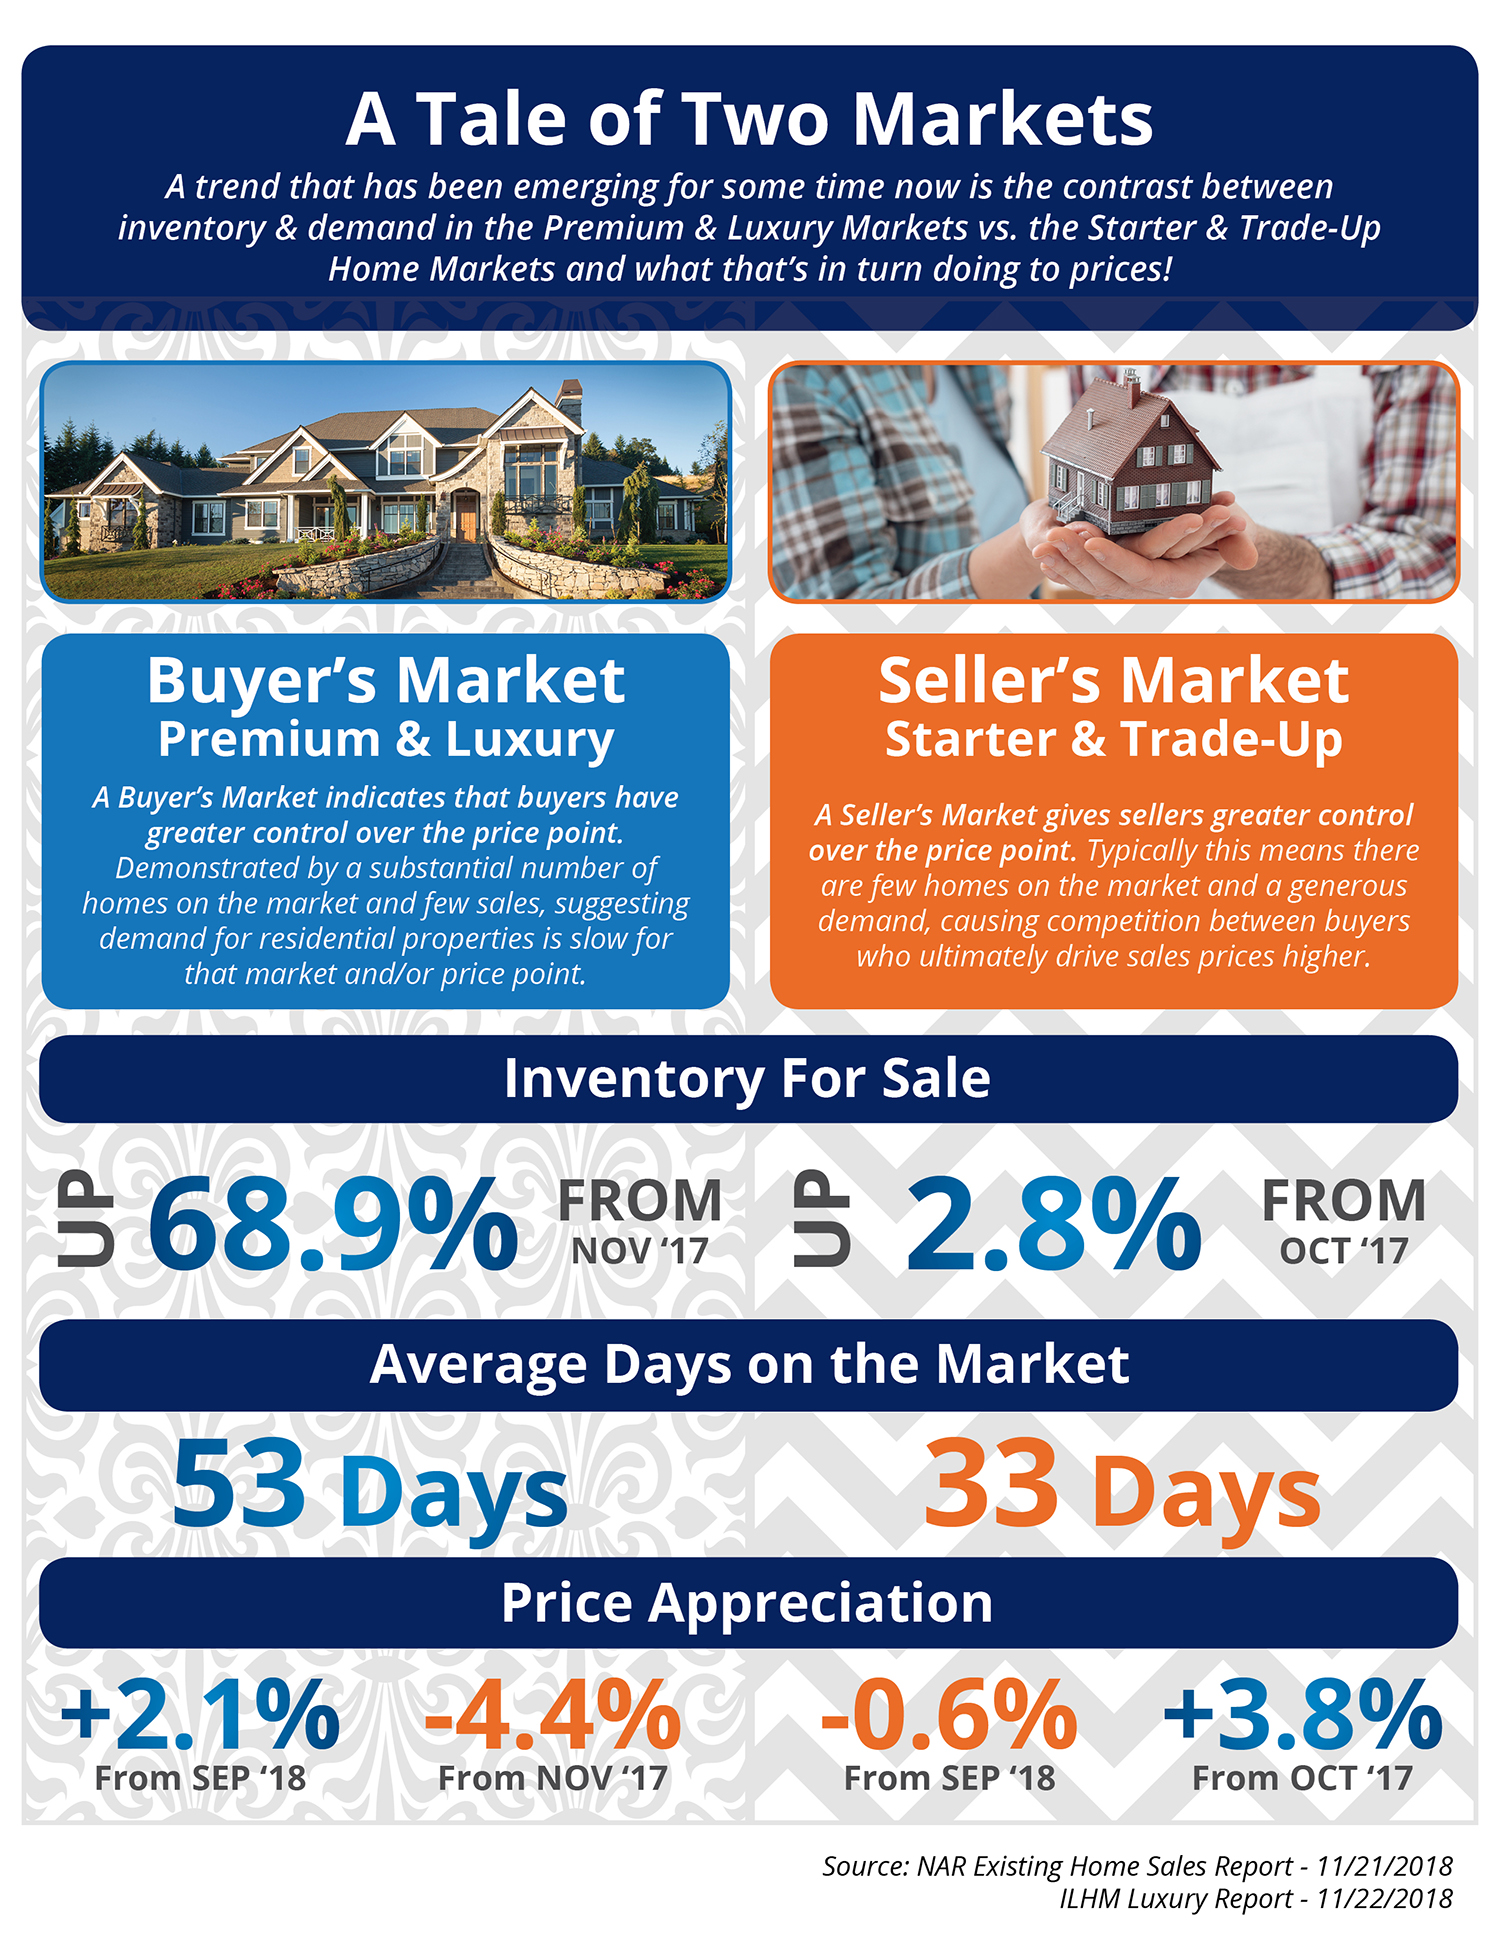 The Tale of Two Markets [INFOGRAPHIC] | Bridge Builders